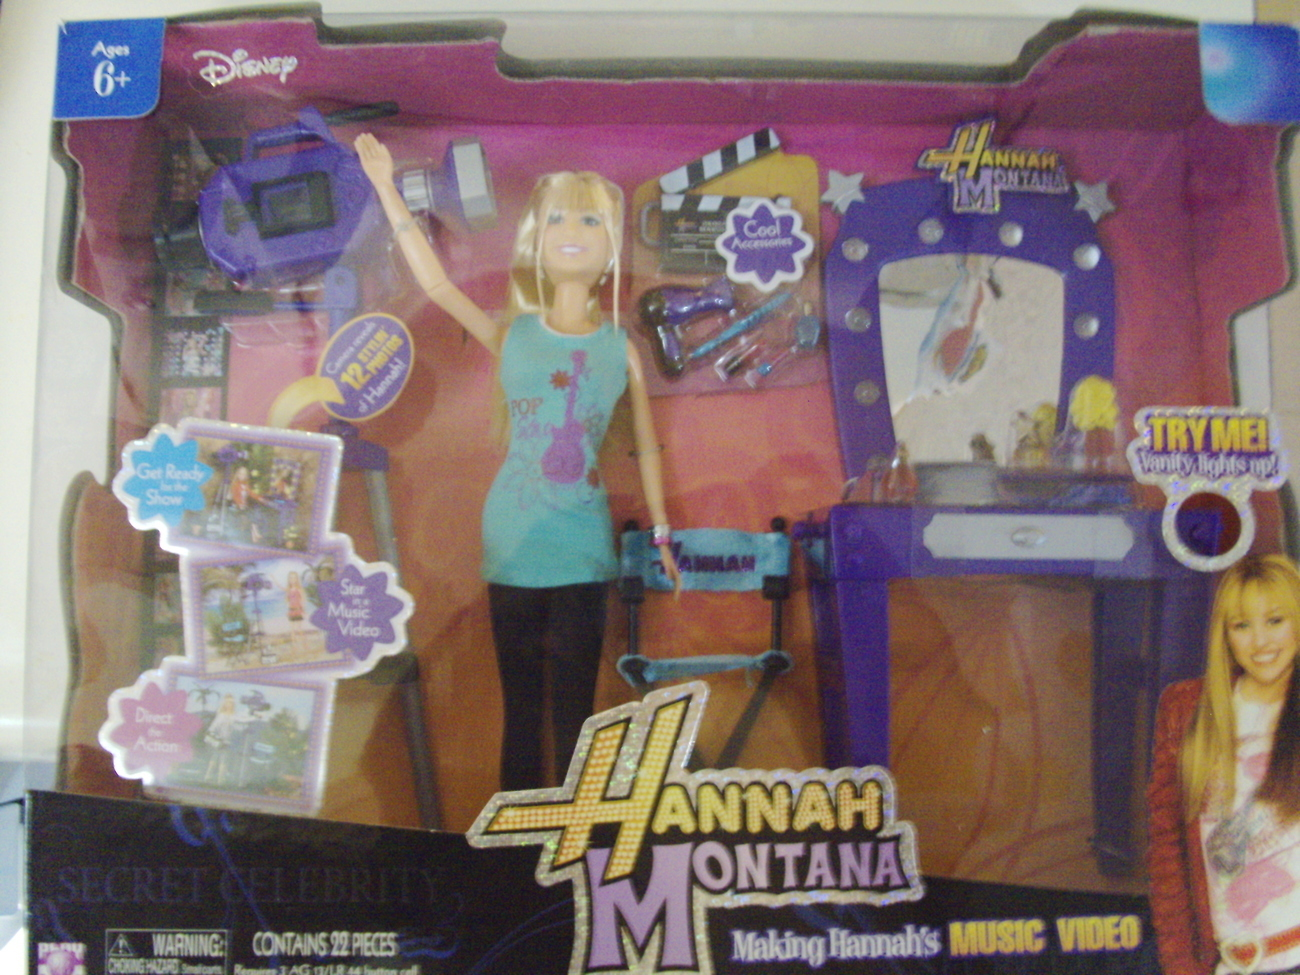 Primary image for Disney Hannah Montana Making Hannah's Music Video ( Miley Cyrus ) - New